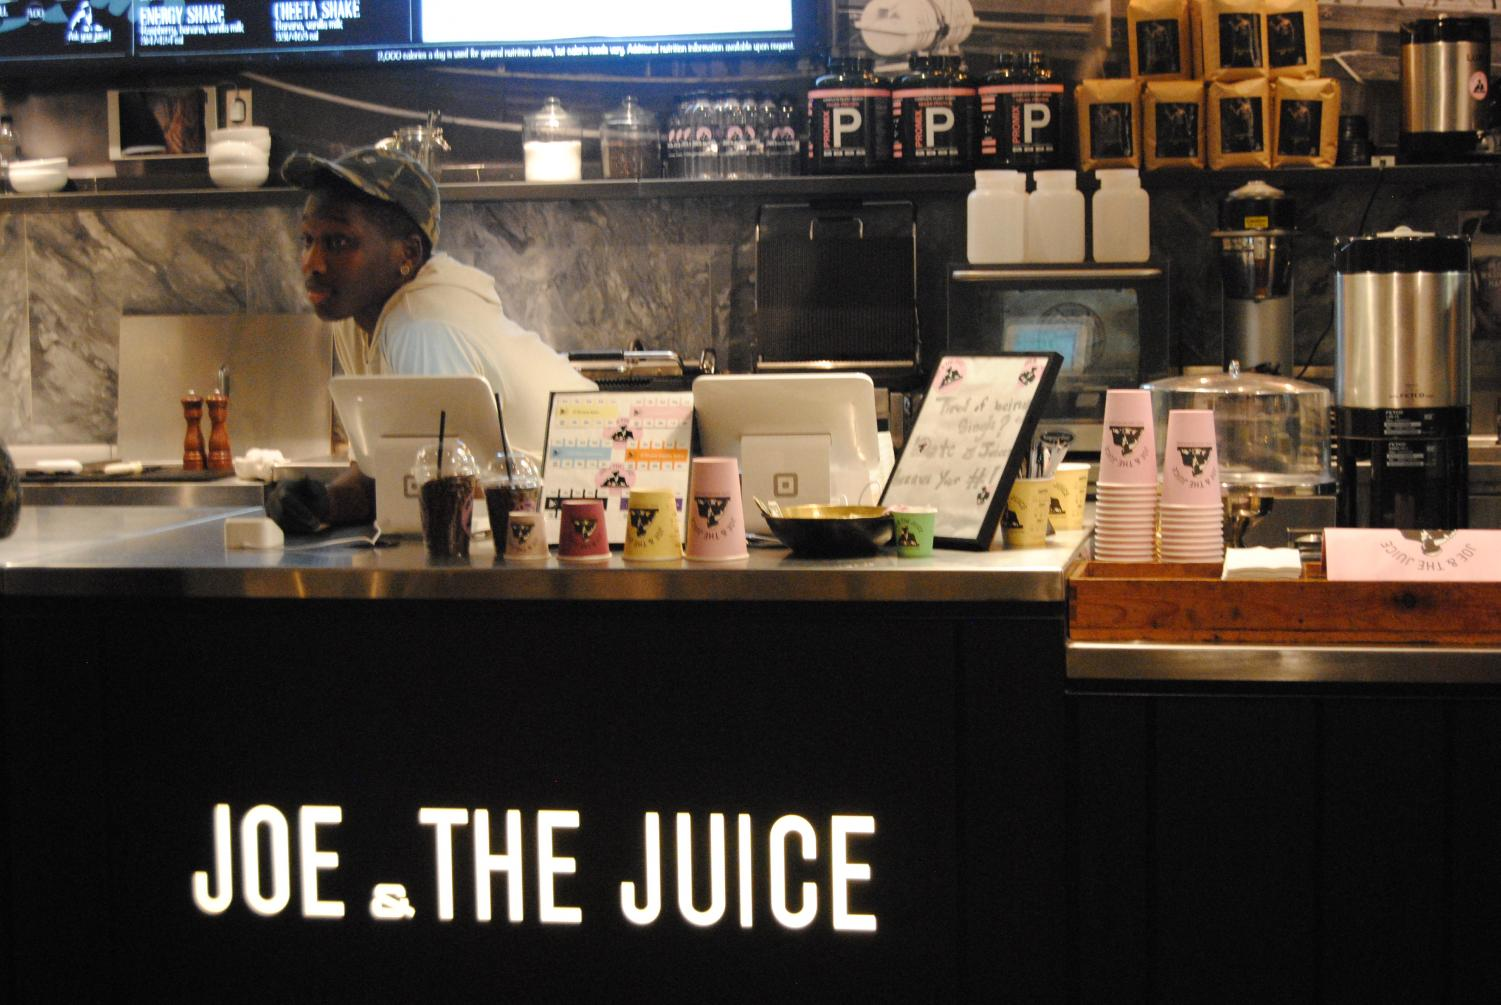 An employee stands behind the counter at Joe & the Juice, a new juice bar in Bethesda. The juice bar serves drinks, but is most well-renowned for its fun customer service. Photo by Isaac DeMarchi.